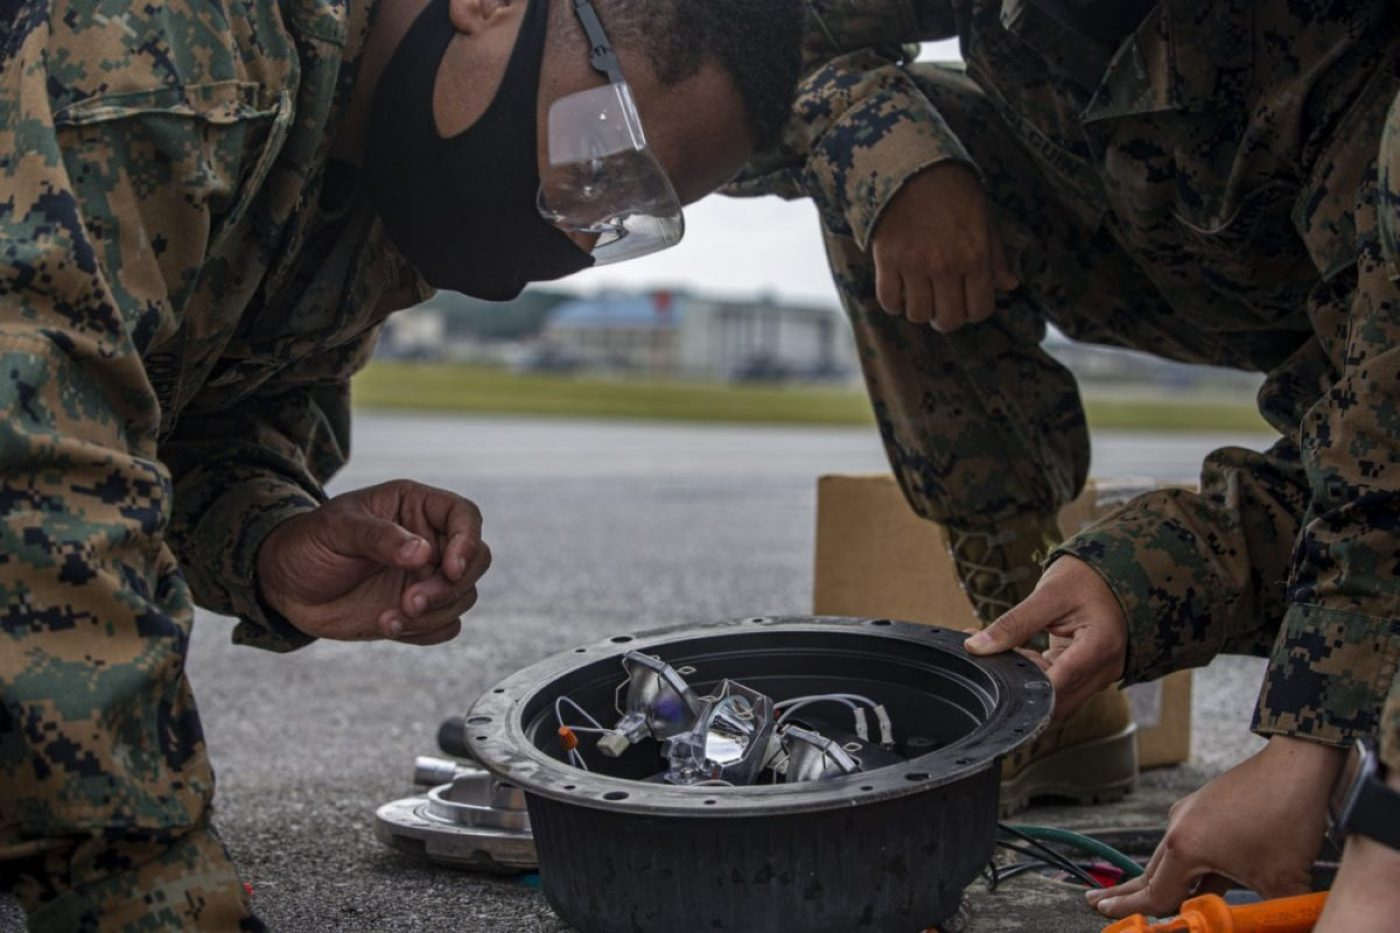 U.S. Marine Corps Cpl. Luis Oquendo, a desk clerk, and a native from Allentown, Pennsylvania, with General Facilities (GF) Headquarters and Support Battalion, inspects a threshold light on the airfield during on-the-job training with Navy Seabees, on Marine Corps Air Station Futenma, Okinawa, Japan, Dec. 3, 2020. When a service ticket is issued, GF Marines shadow Seabees to learn their side of the job. Seabees are trained to build and maintain permanent structures while Marines are trained in expedient construction and maintenance. The training is hands-on, teaching Marines how to build, plumb and power structures to code for long term use. (U.S. Marine Corps photo by Cpl. Karis Mattingly)